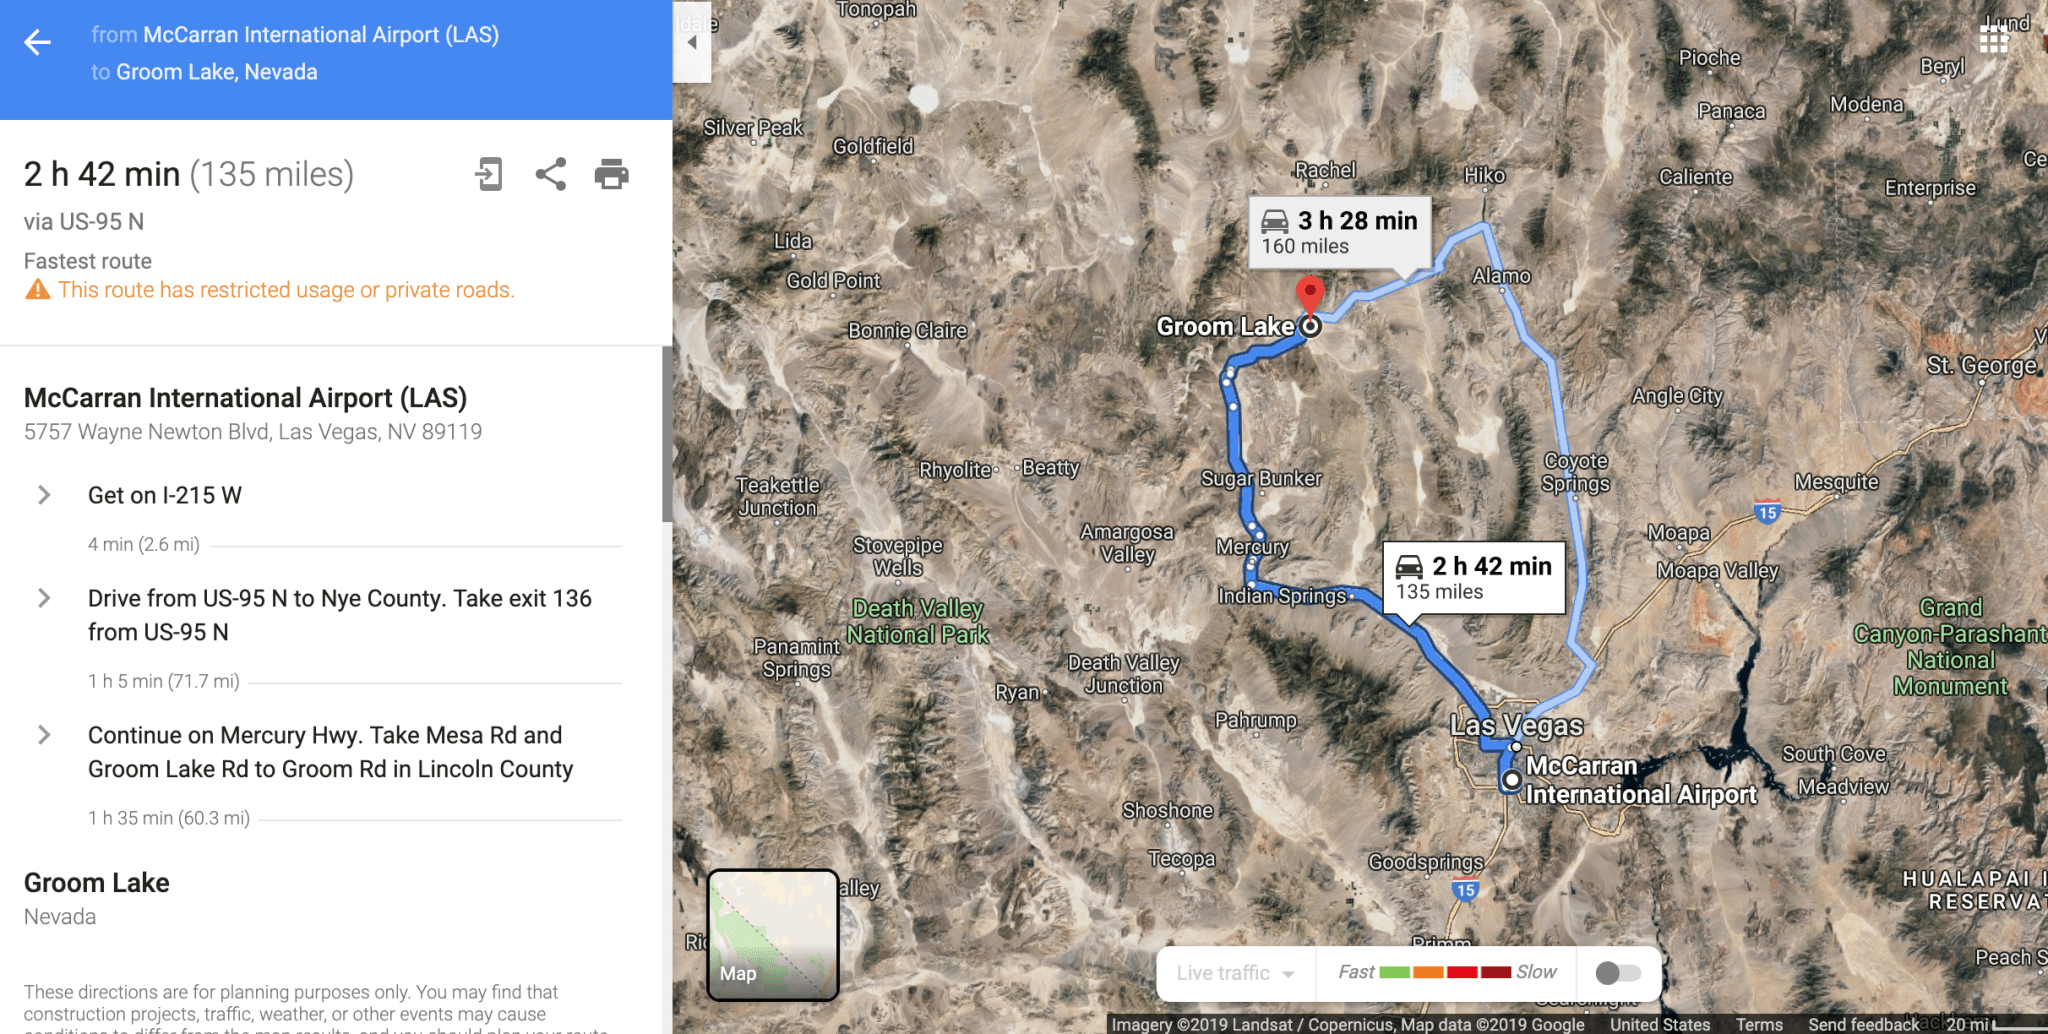 The drive from Las Vegas International Airport to Groom Lake home to Area 51. (Image via Google Maps)